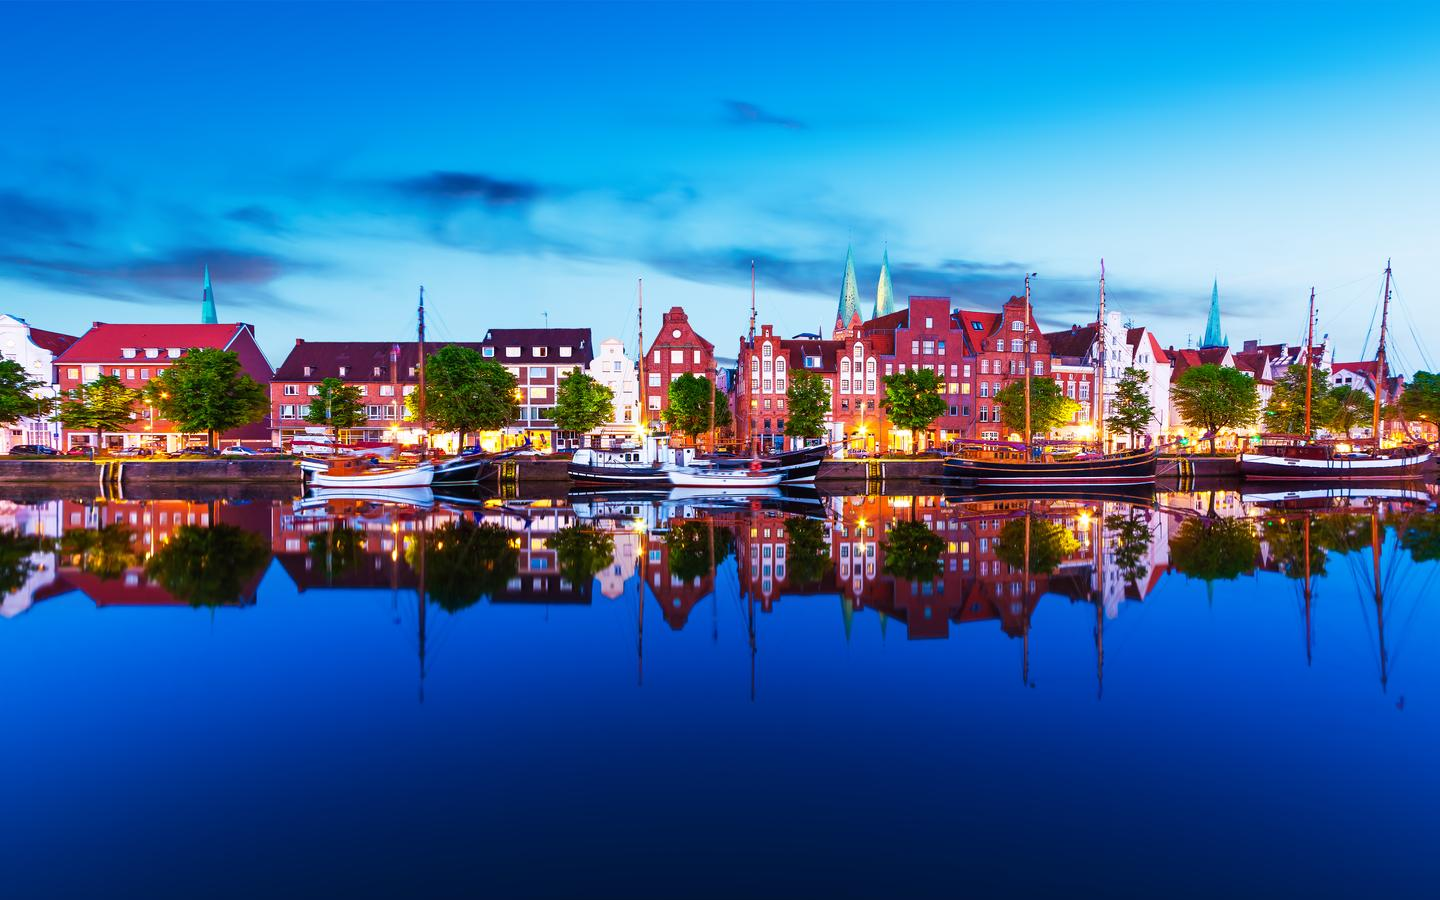 Hotels in Lübeck